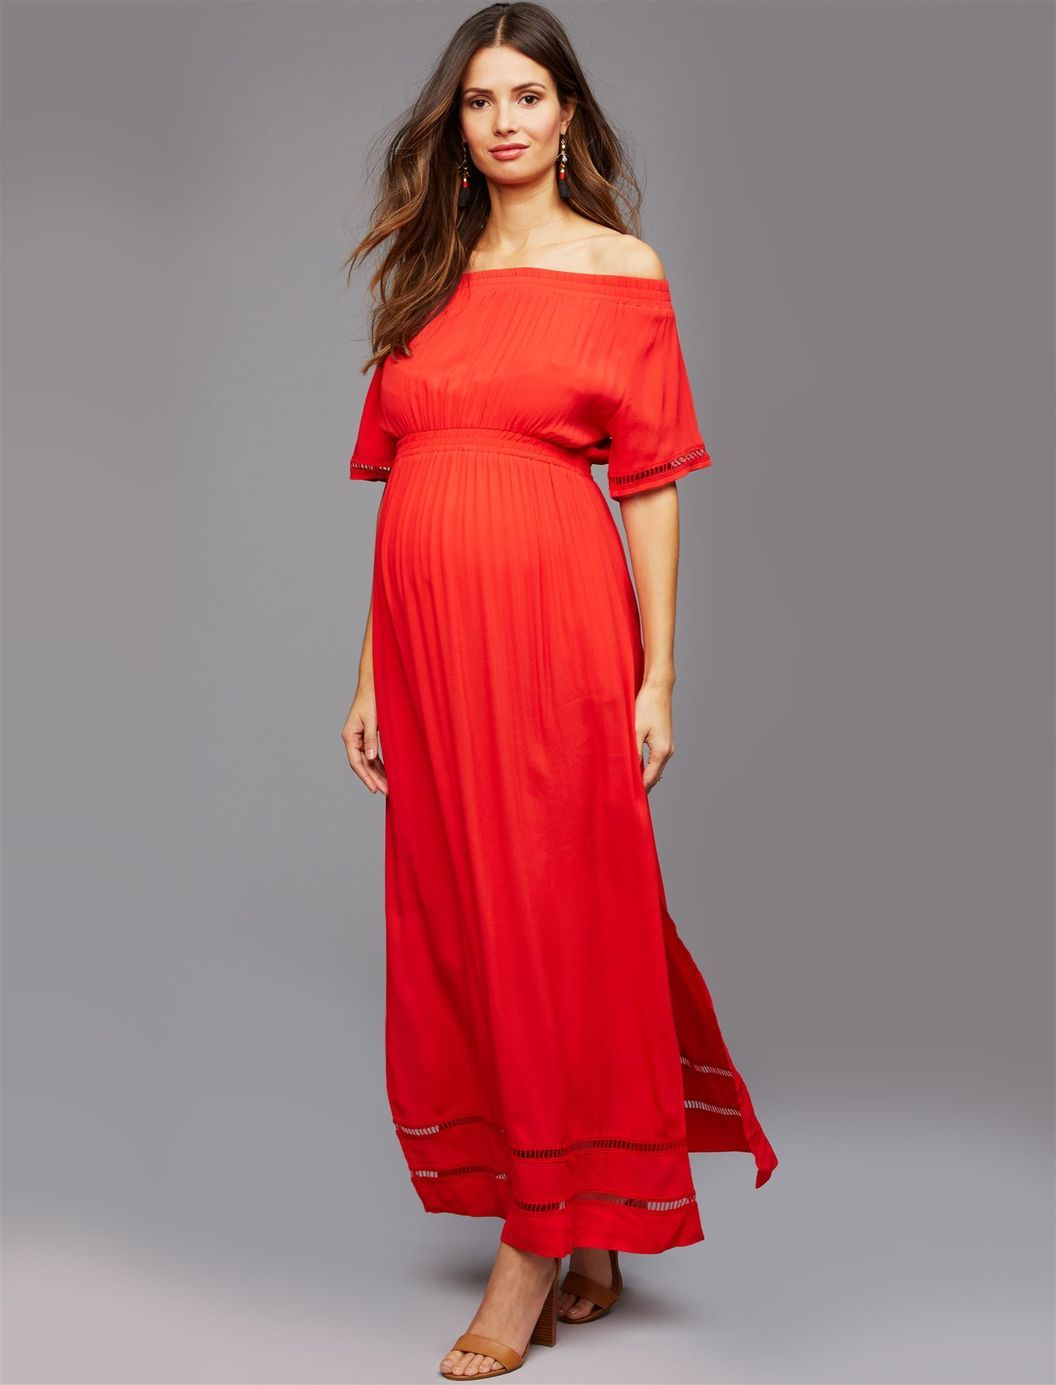 Ripe off the shoulder maternity and nursing dress a pea in the pod